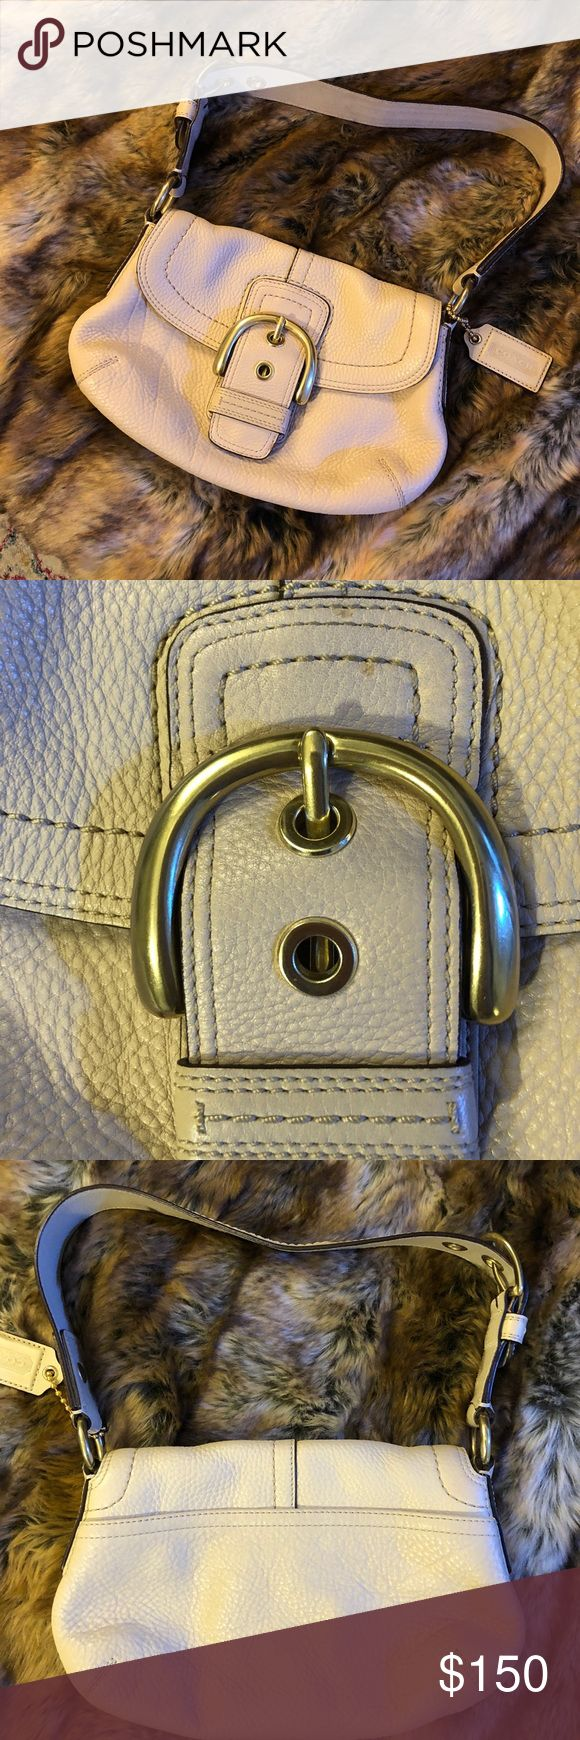 Coach Small Leather Satchel Tan leather - near perfect condition!  Let me know if you would like different pictures or have questions! 🤗 Coach Bags Shoulder Bags